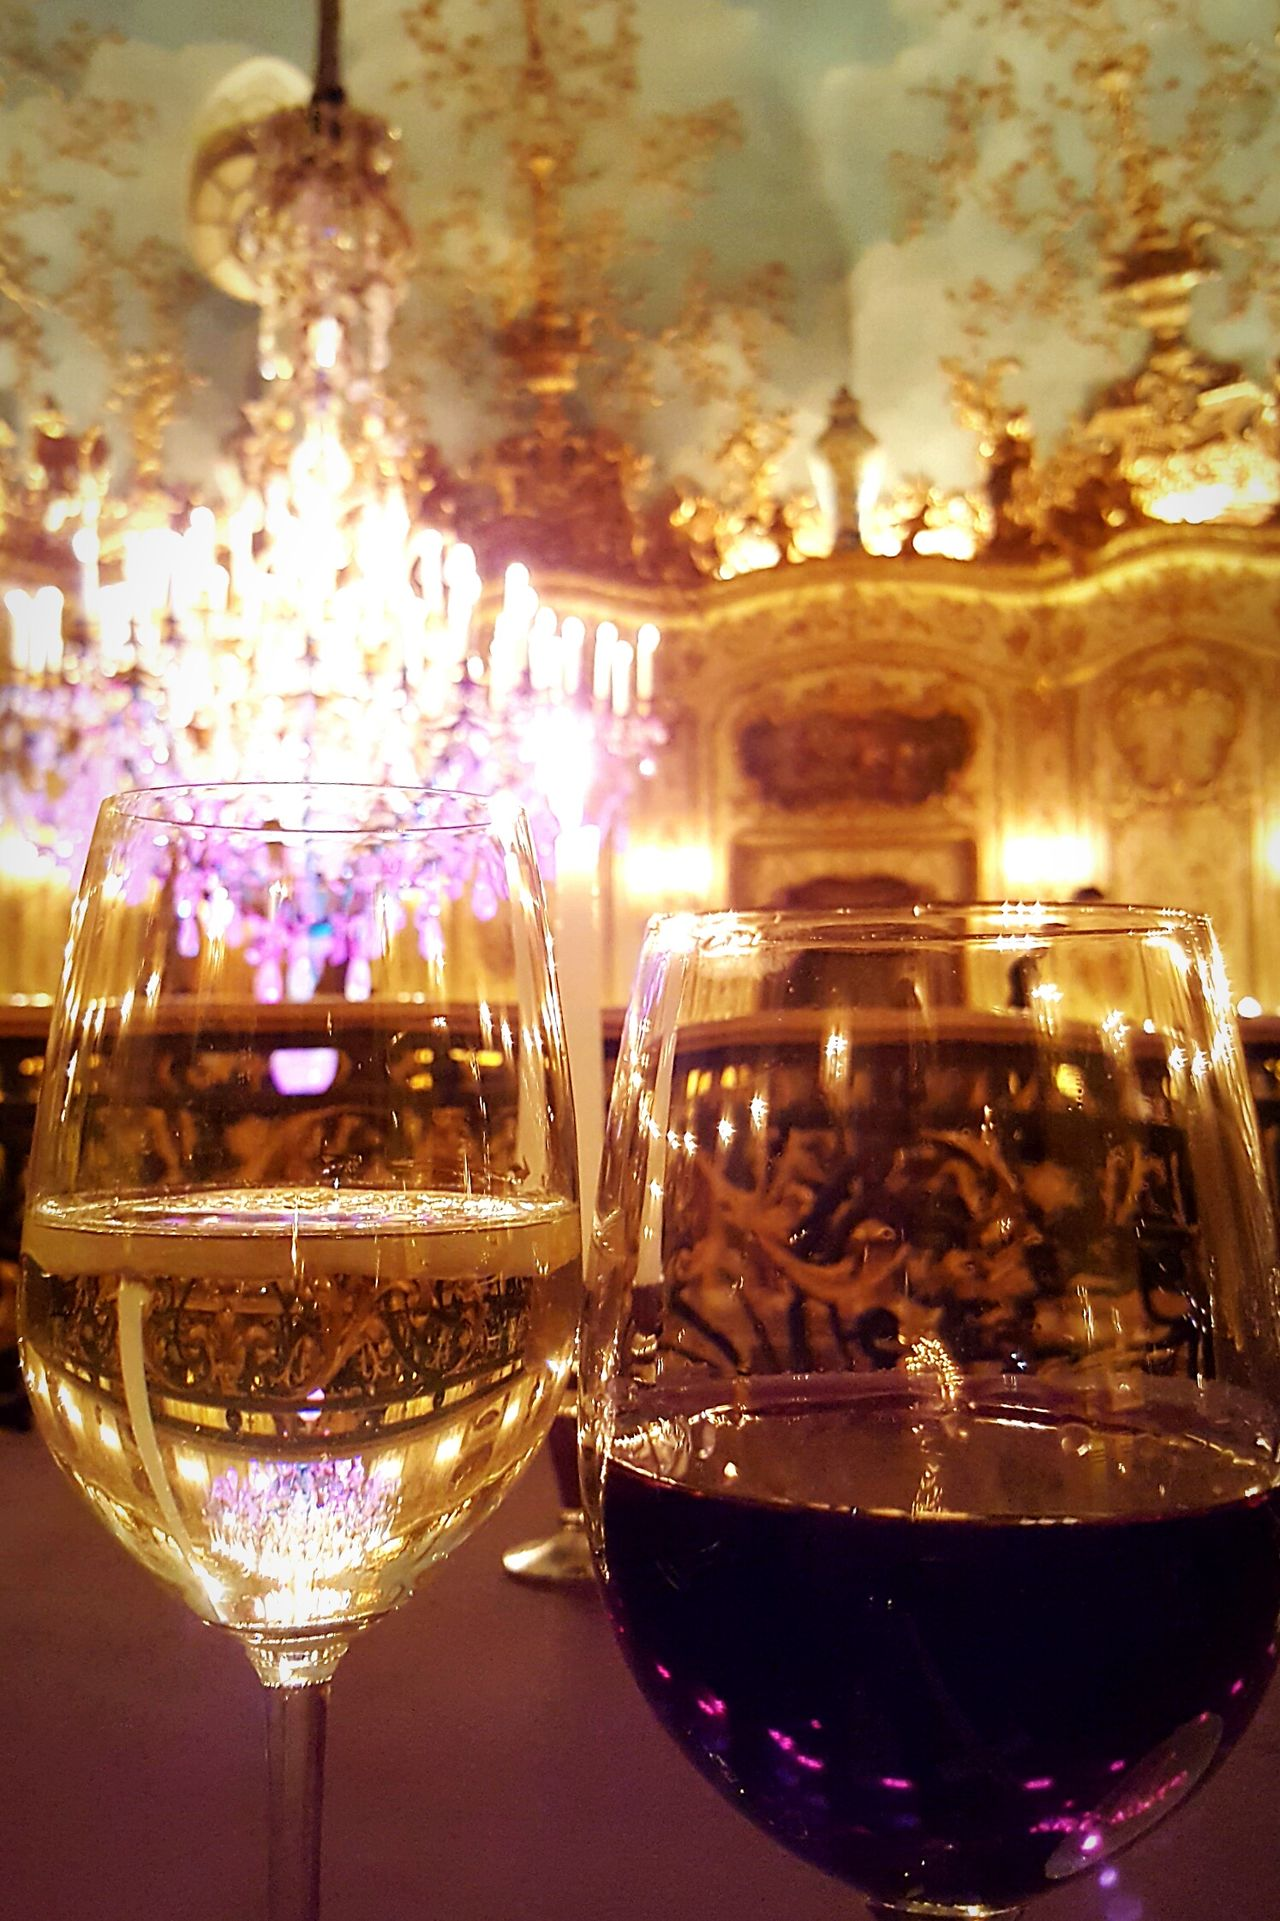 Drinking Glass Drink Celebration Indoors  Close-up No People Wine Gold Colored Wineglass Alcohol Night Posh Restaurant Golden Rococò Style Rococo Rococostyle Baroque Style Baroque Luxury Turandot Restaurant Moscow Posh Restaurant Moscow Russia Turandot